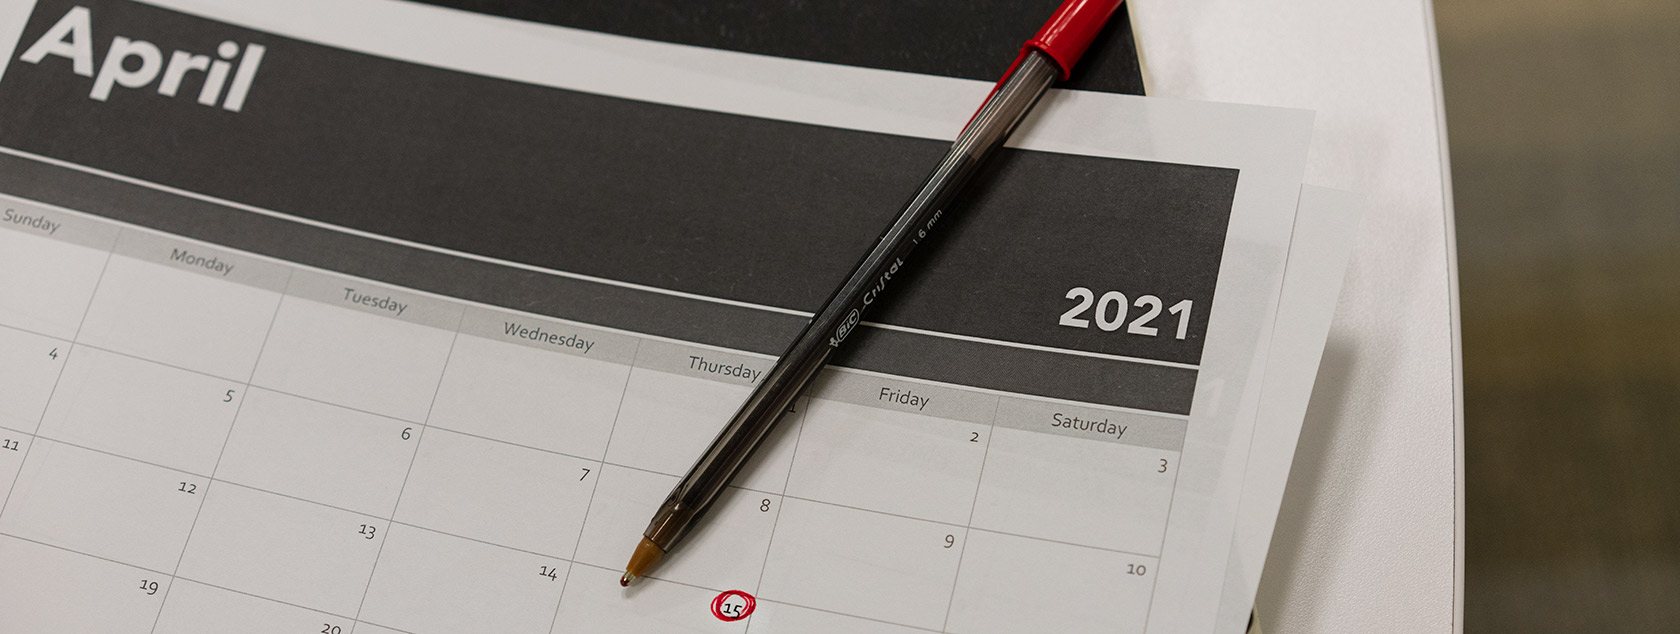 April-2021-calendar-page-with-15th-circled-in-red-pen